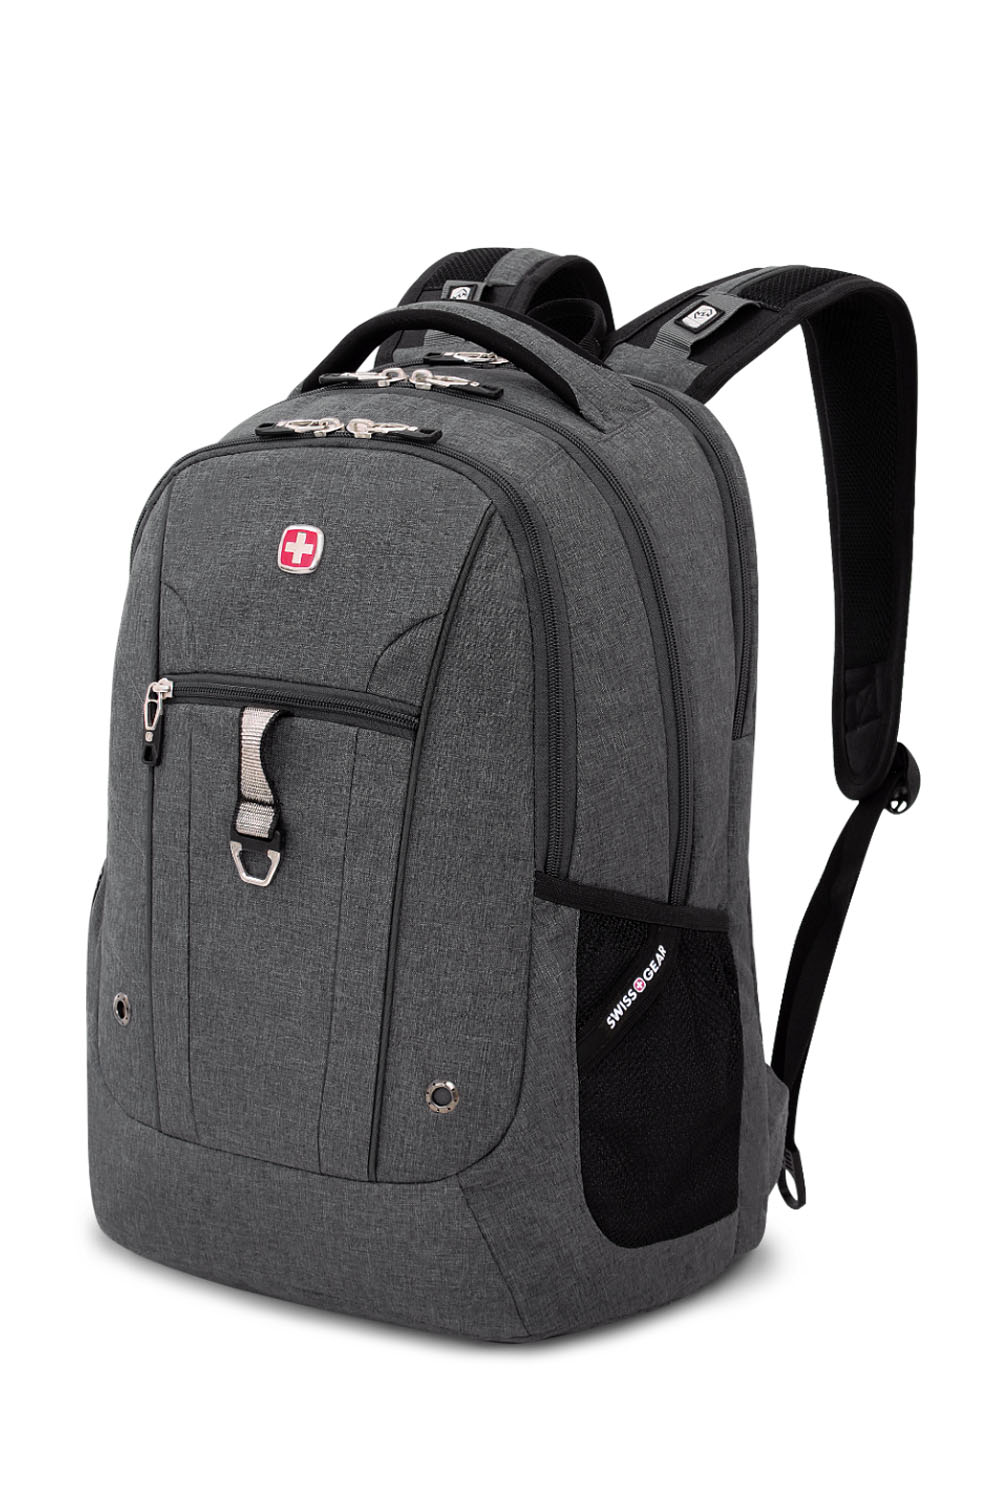 SWISSGEAR 5815 Laptop Backpack - Heather